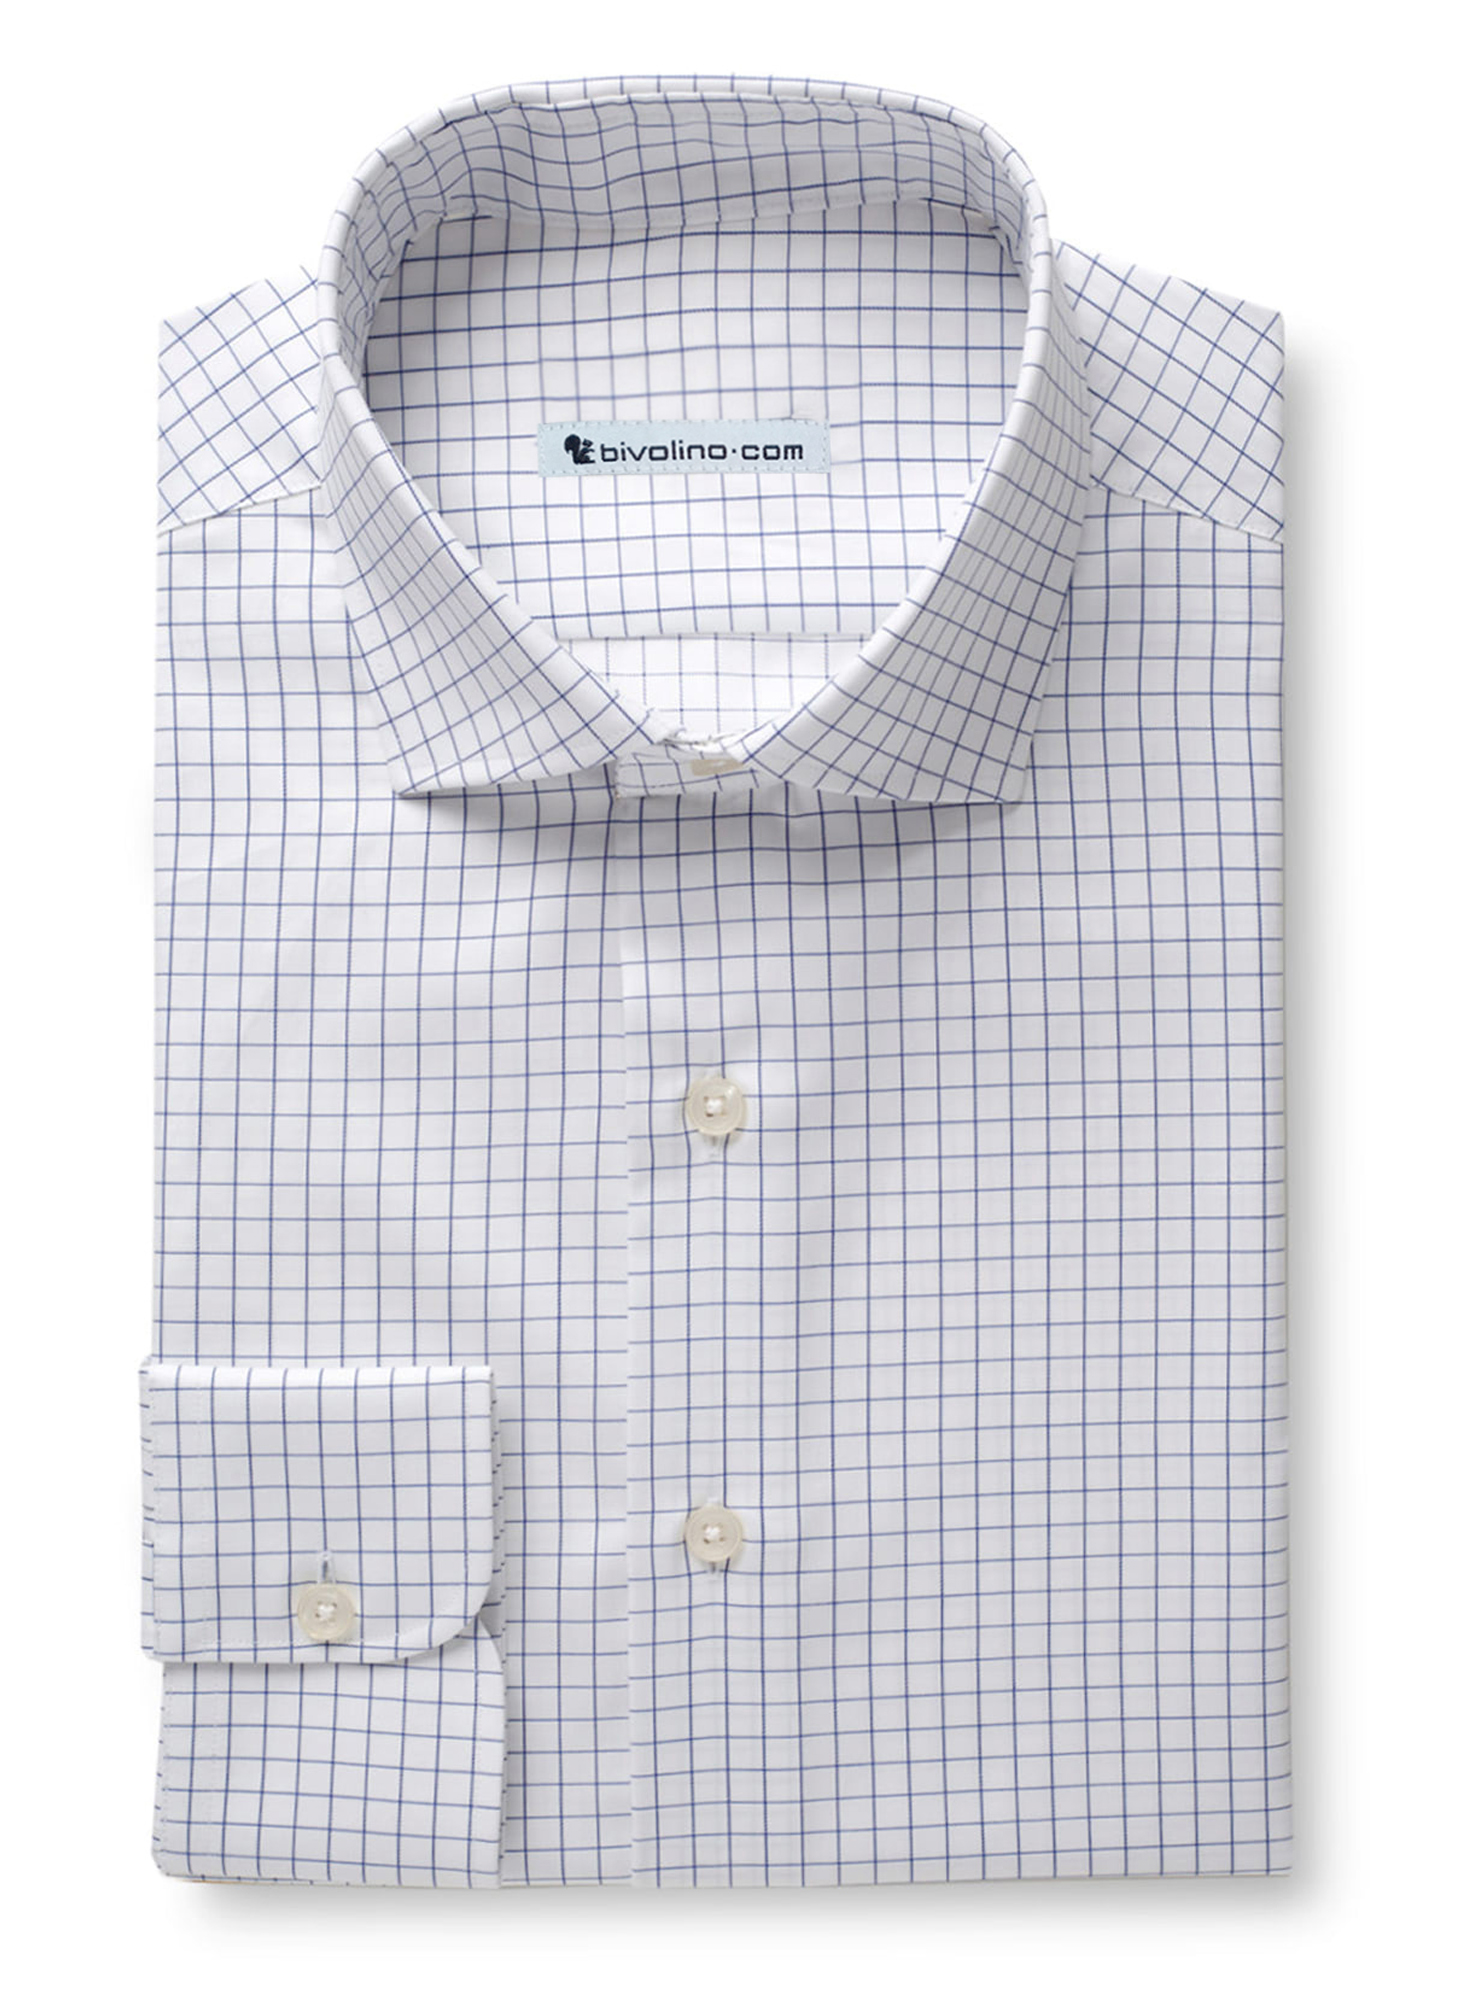 BELGRIBA - Navy blue check twill shirt - DARCi 3